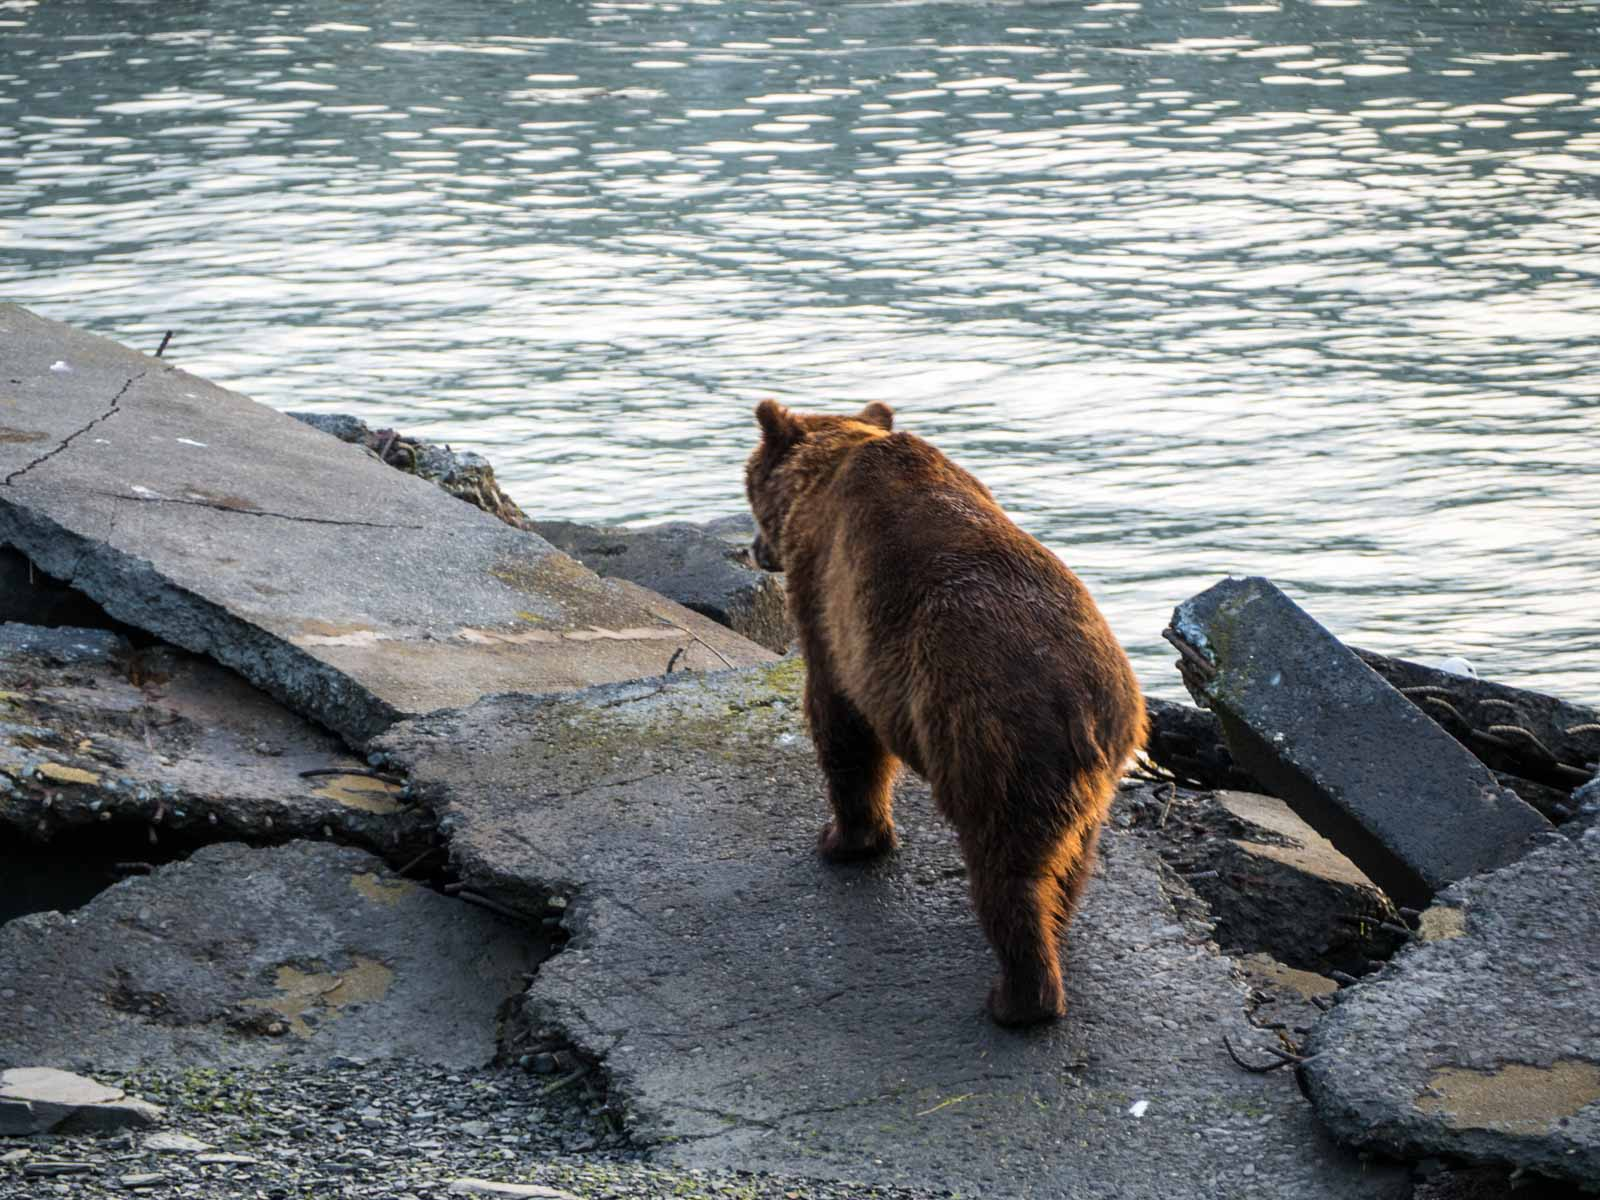 Alaska - The Great Land - Grizzly Bear in Valdez